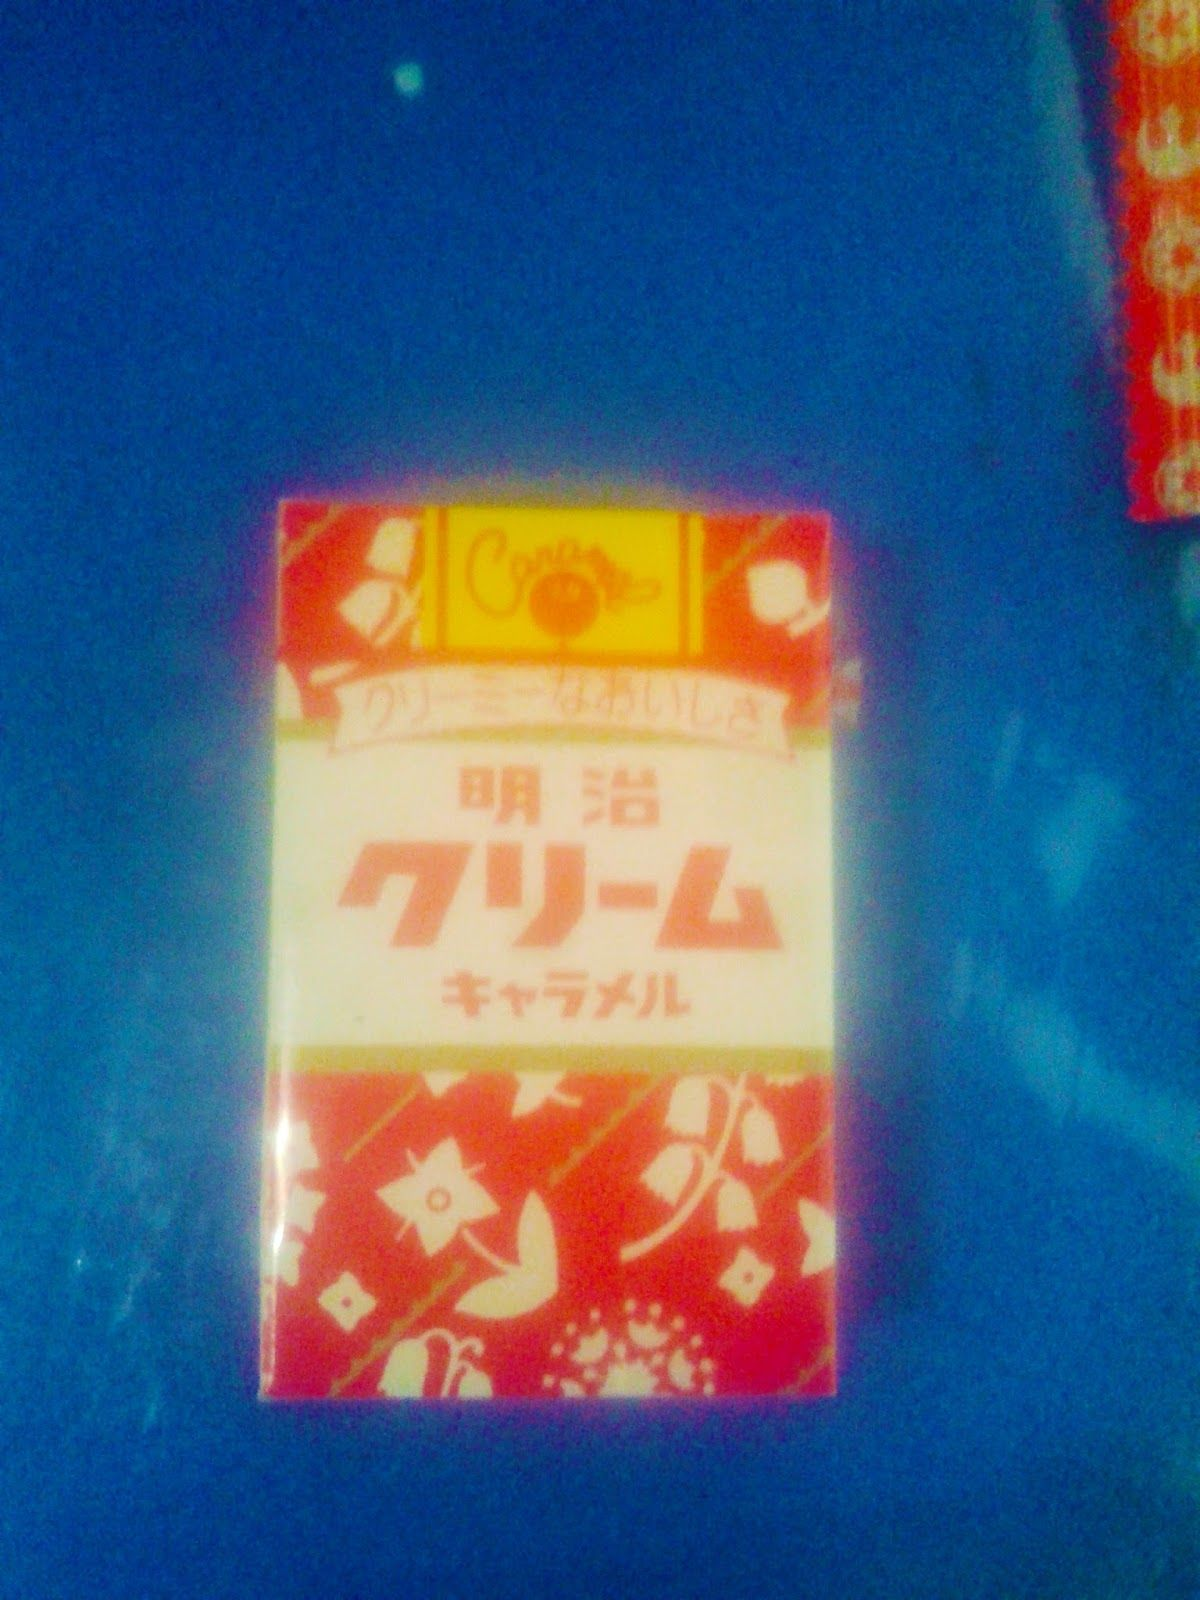 Japanese Candy Japan Candy Tokyotreat Food Anime Review Coisas